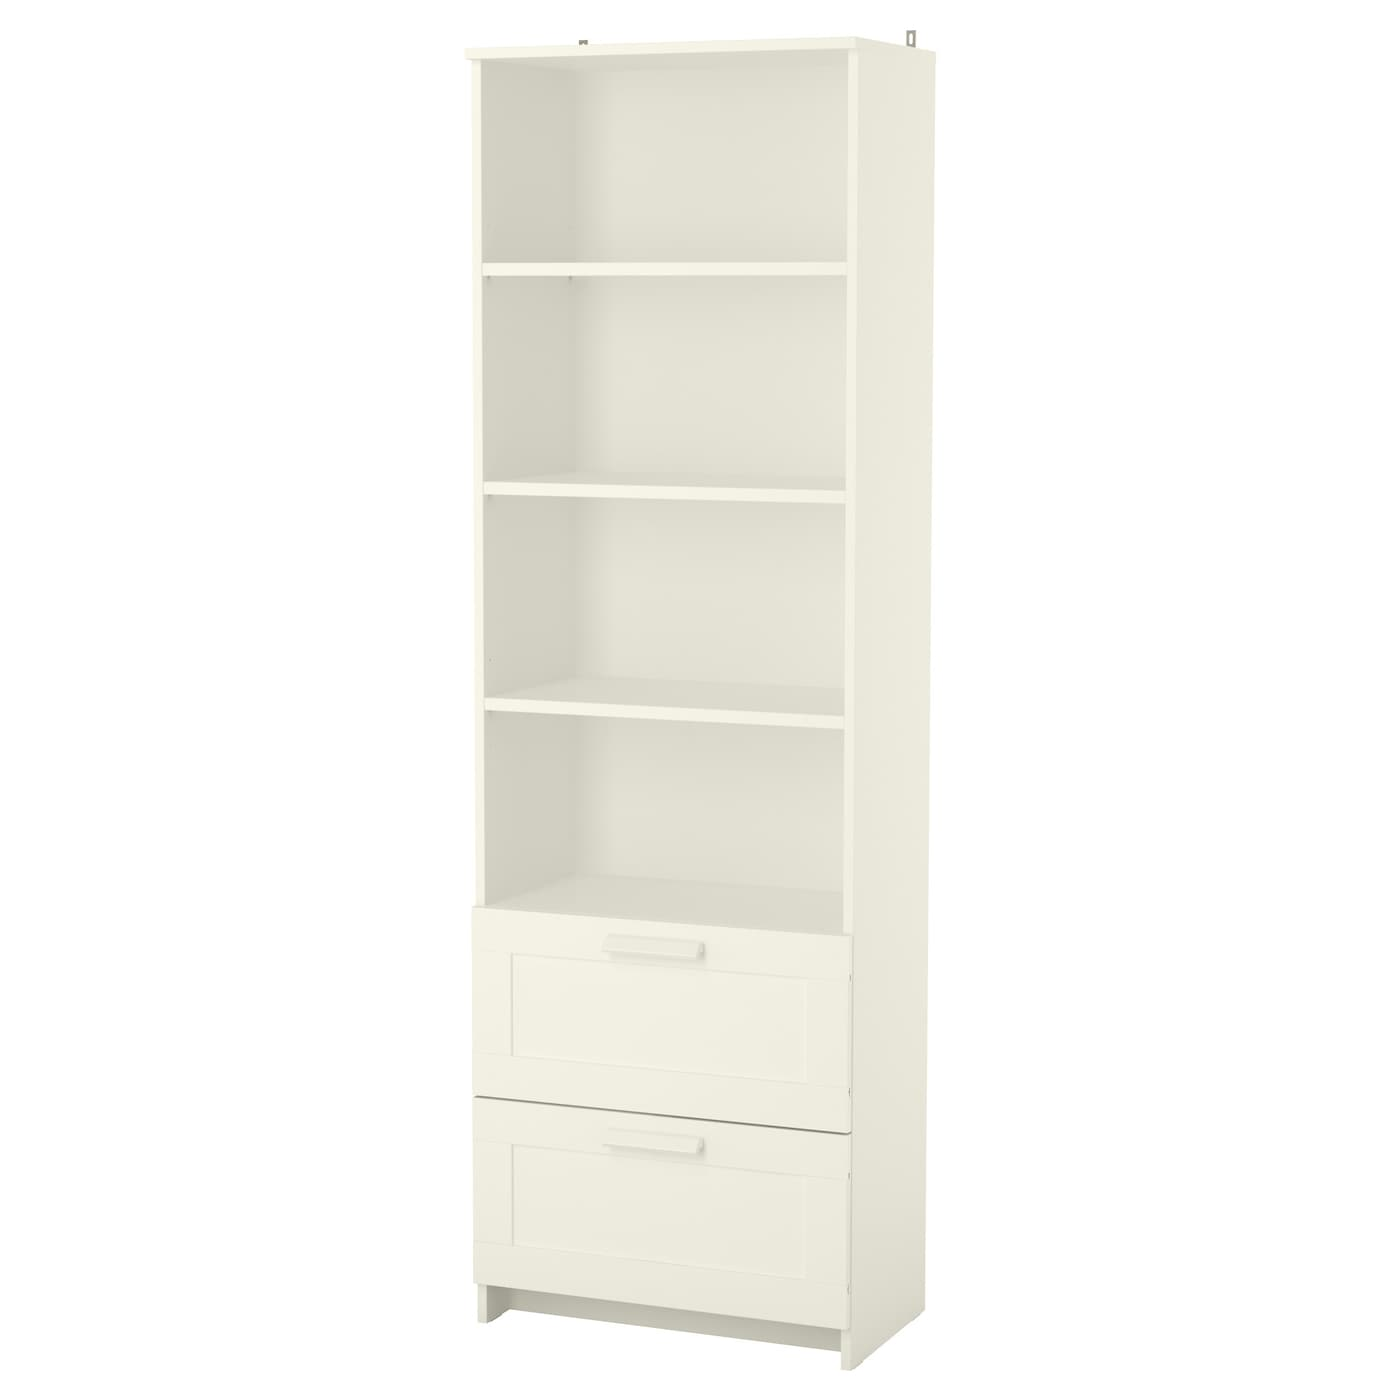 IKEA BRIMNES bookcase Adjustable shelves, so you can customise your storage as needed.